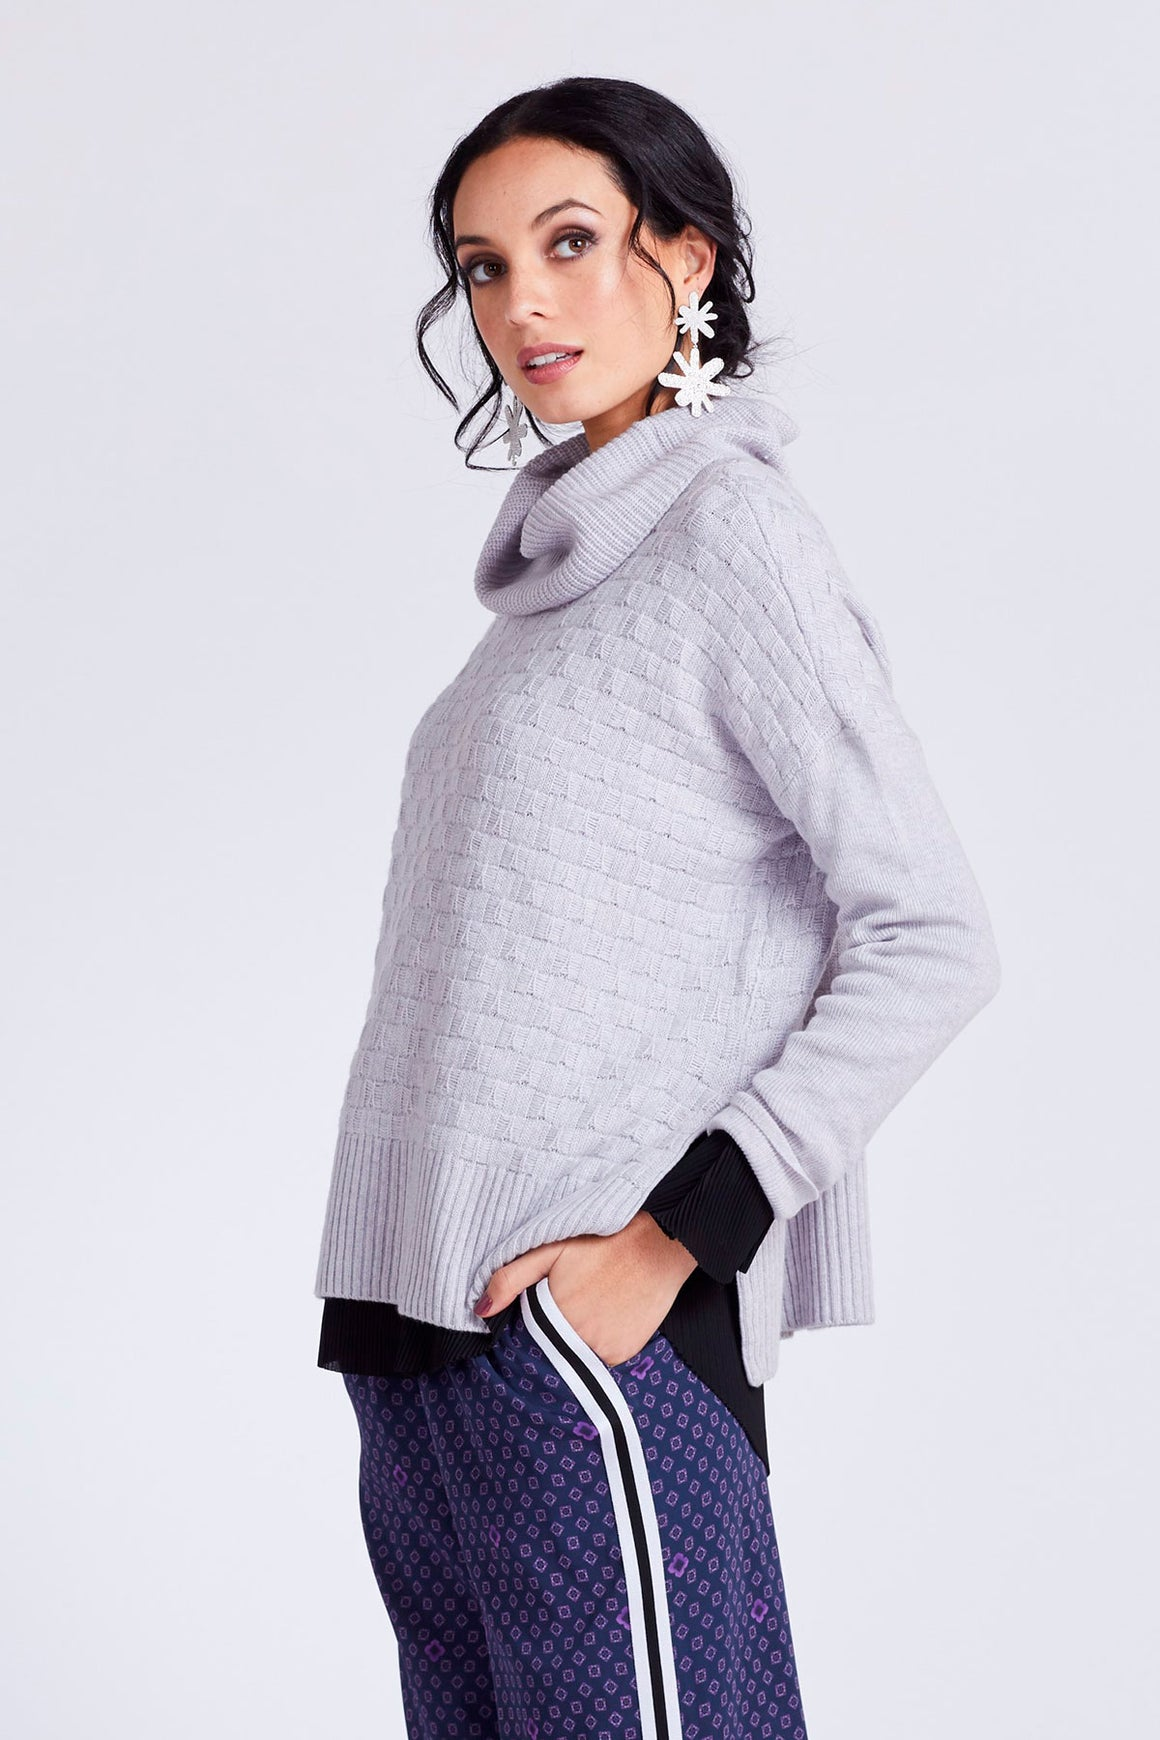 Loobies Story Margaux Sweater - Mist